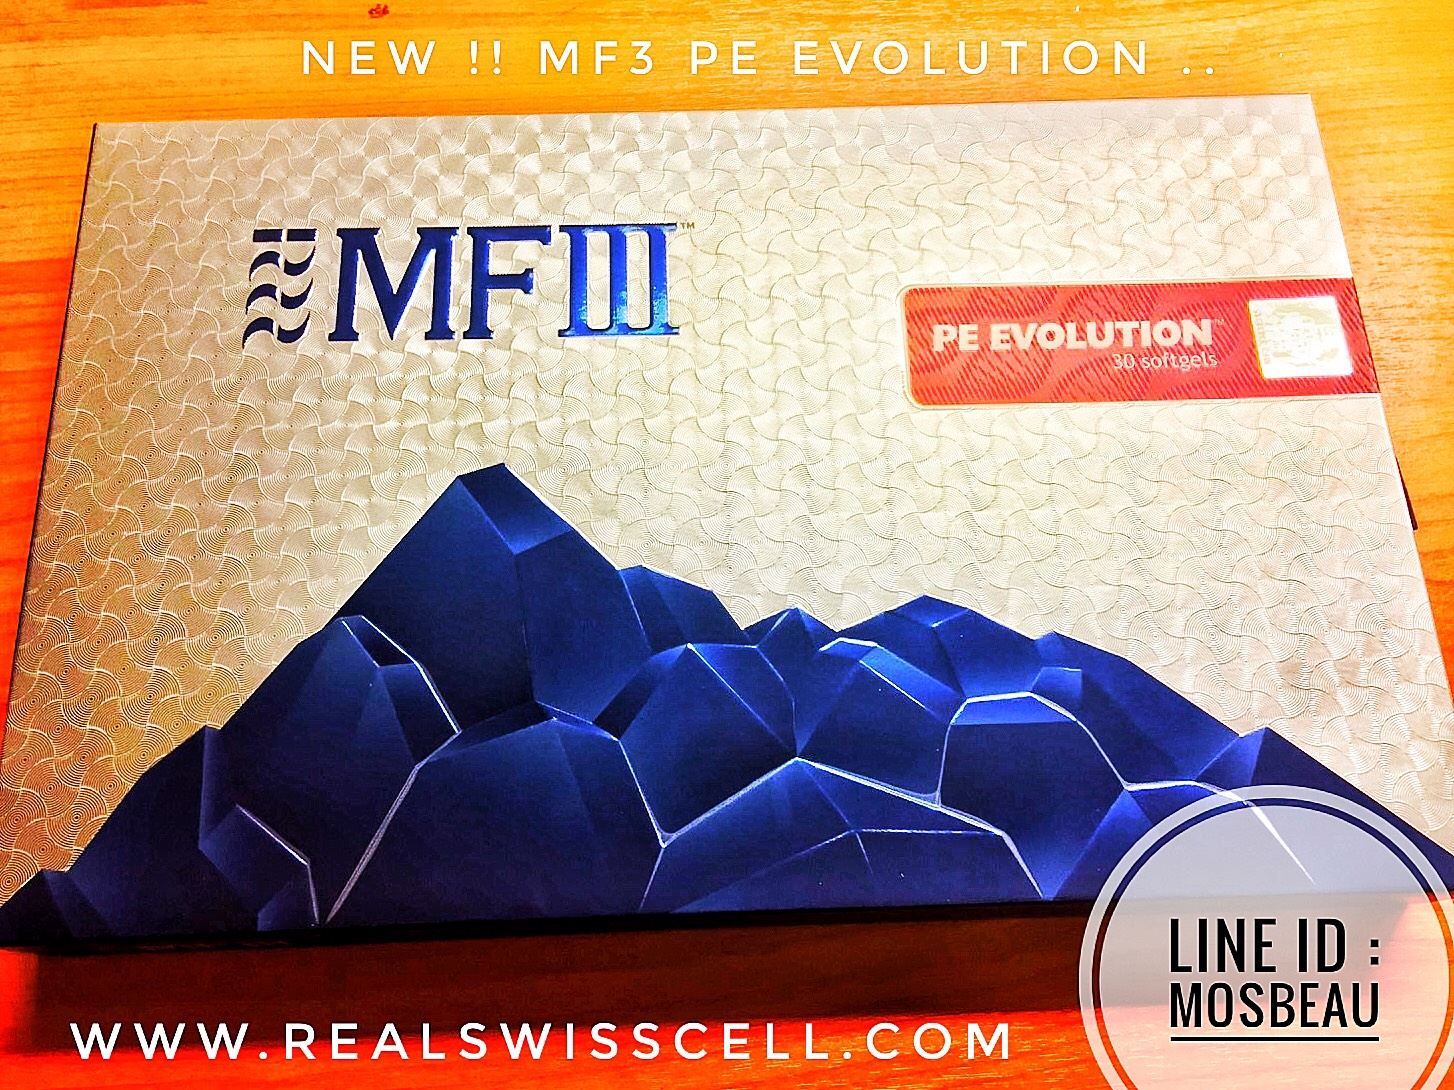 NEW...MF3 PE EVOLUTION Enhanced formulation of Sheep Placenta Extracts with Premium Fish DNA Cellular Extracts